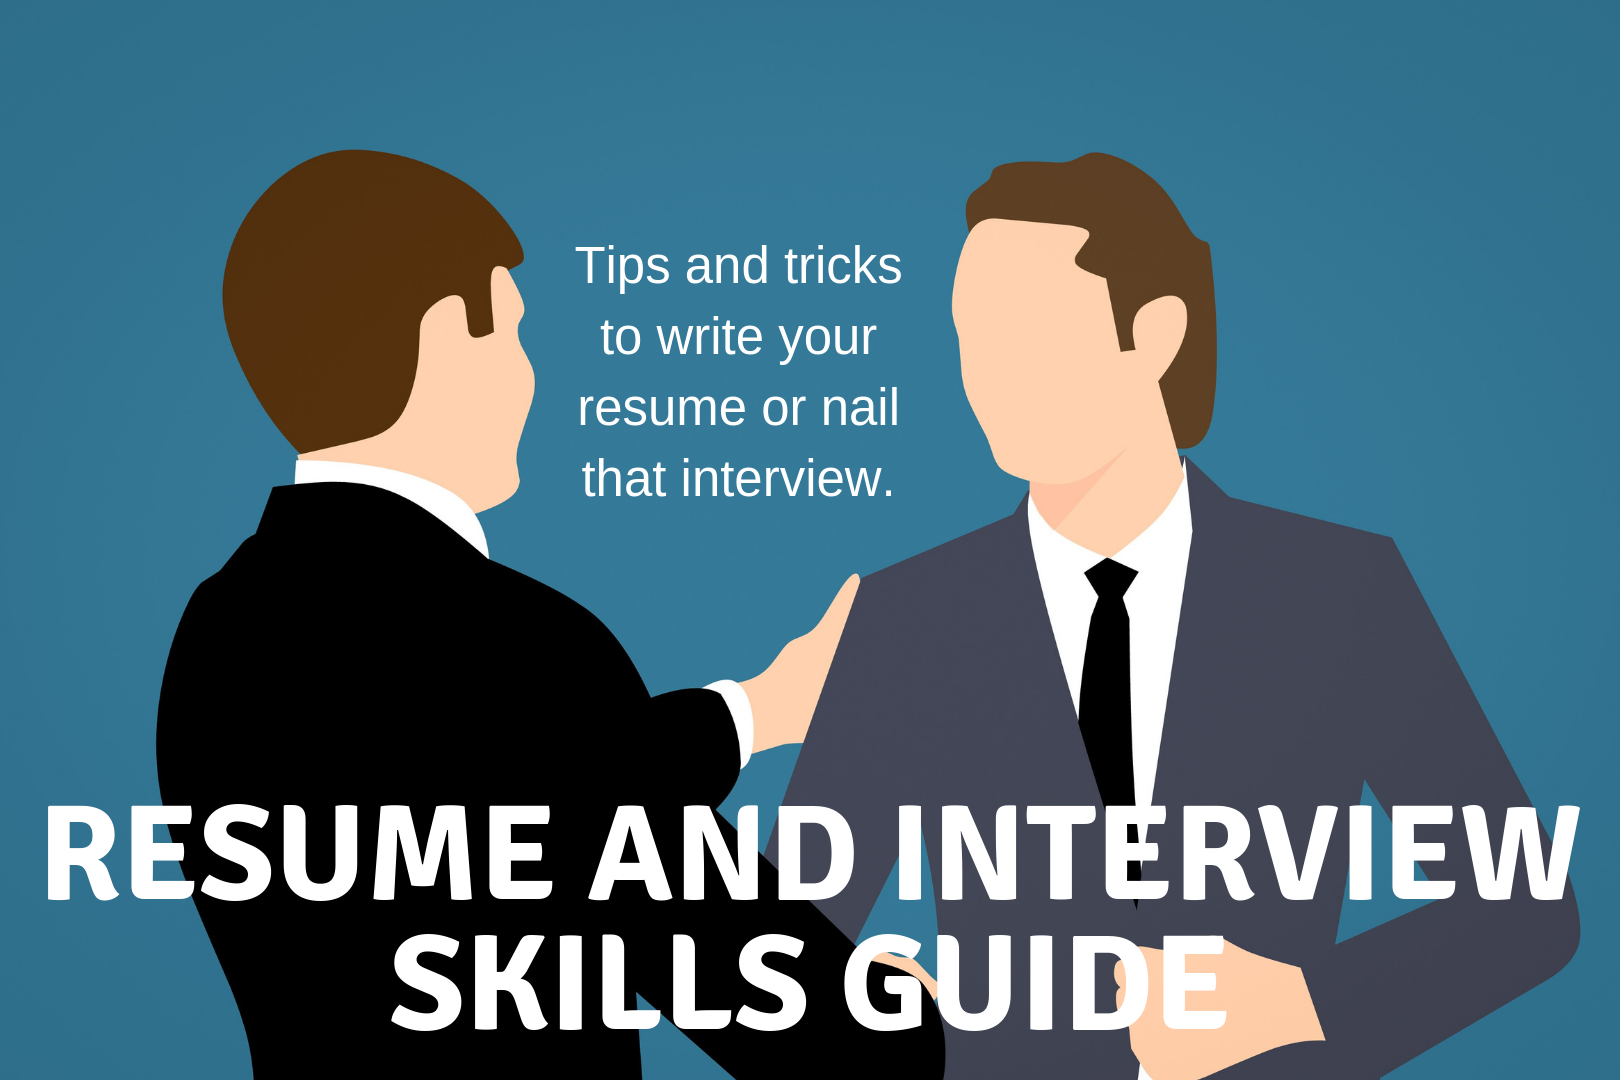 Resume and Interview Skills Guide